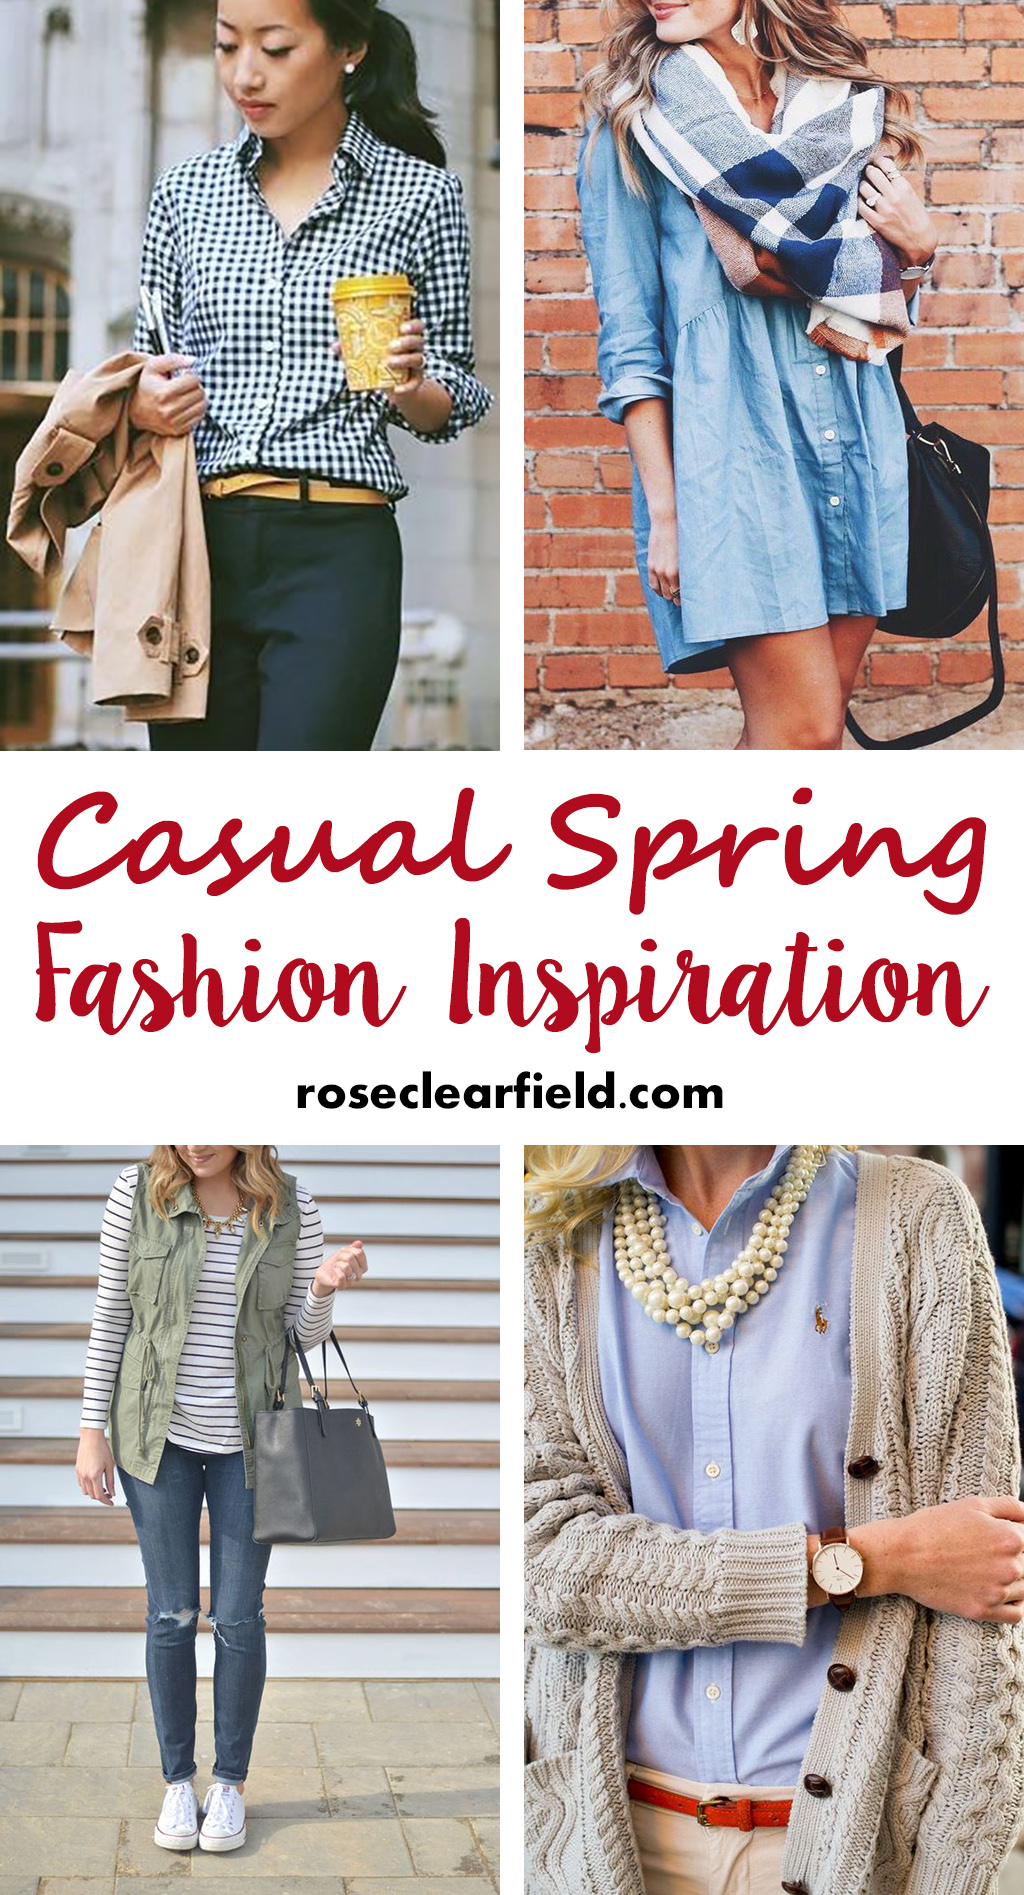 Casual Spring Fashion Inspiration | http://www.roseclearfield.com